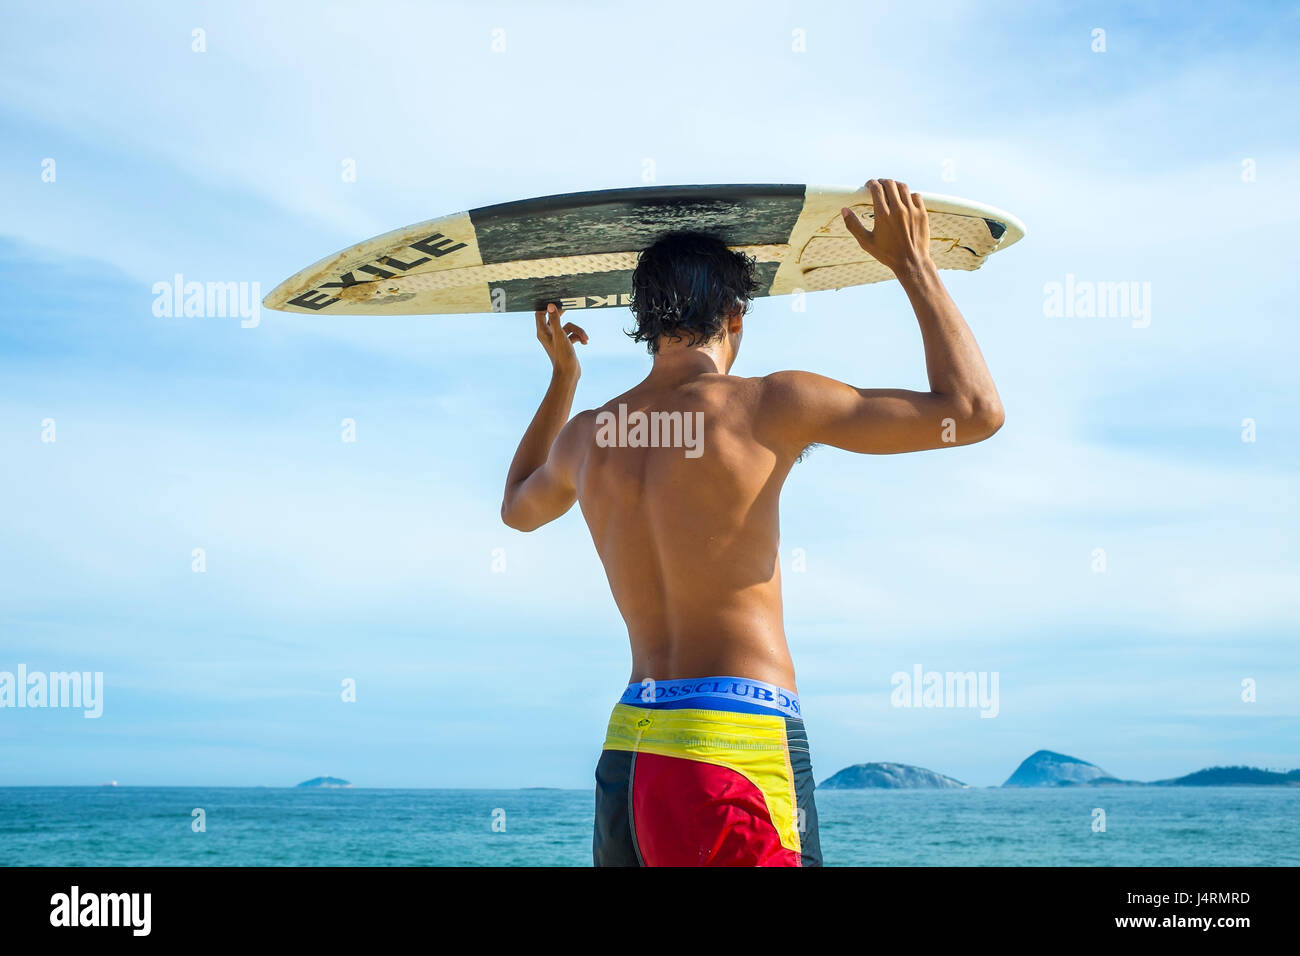 RIO DE JANEIRO - FEBRUARY 5, 2017: A young Brazilian stands scanning for waves with his skimboard overhead on Ipanema - Stock Image